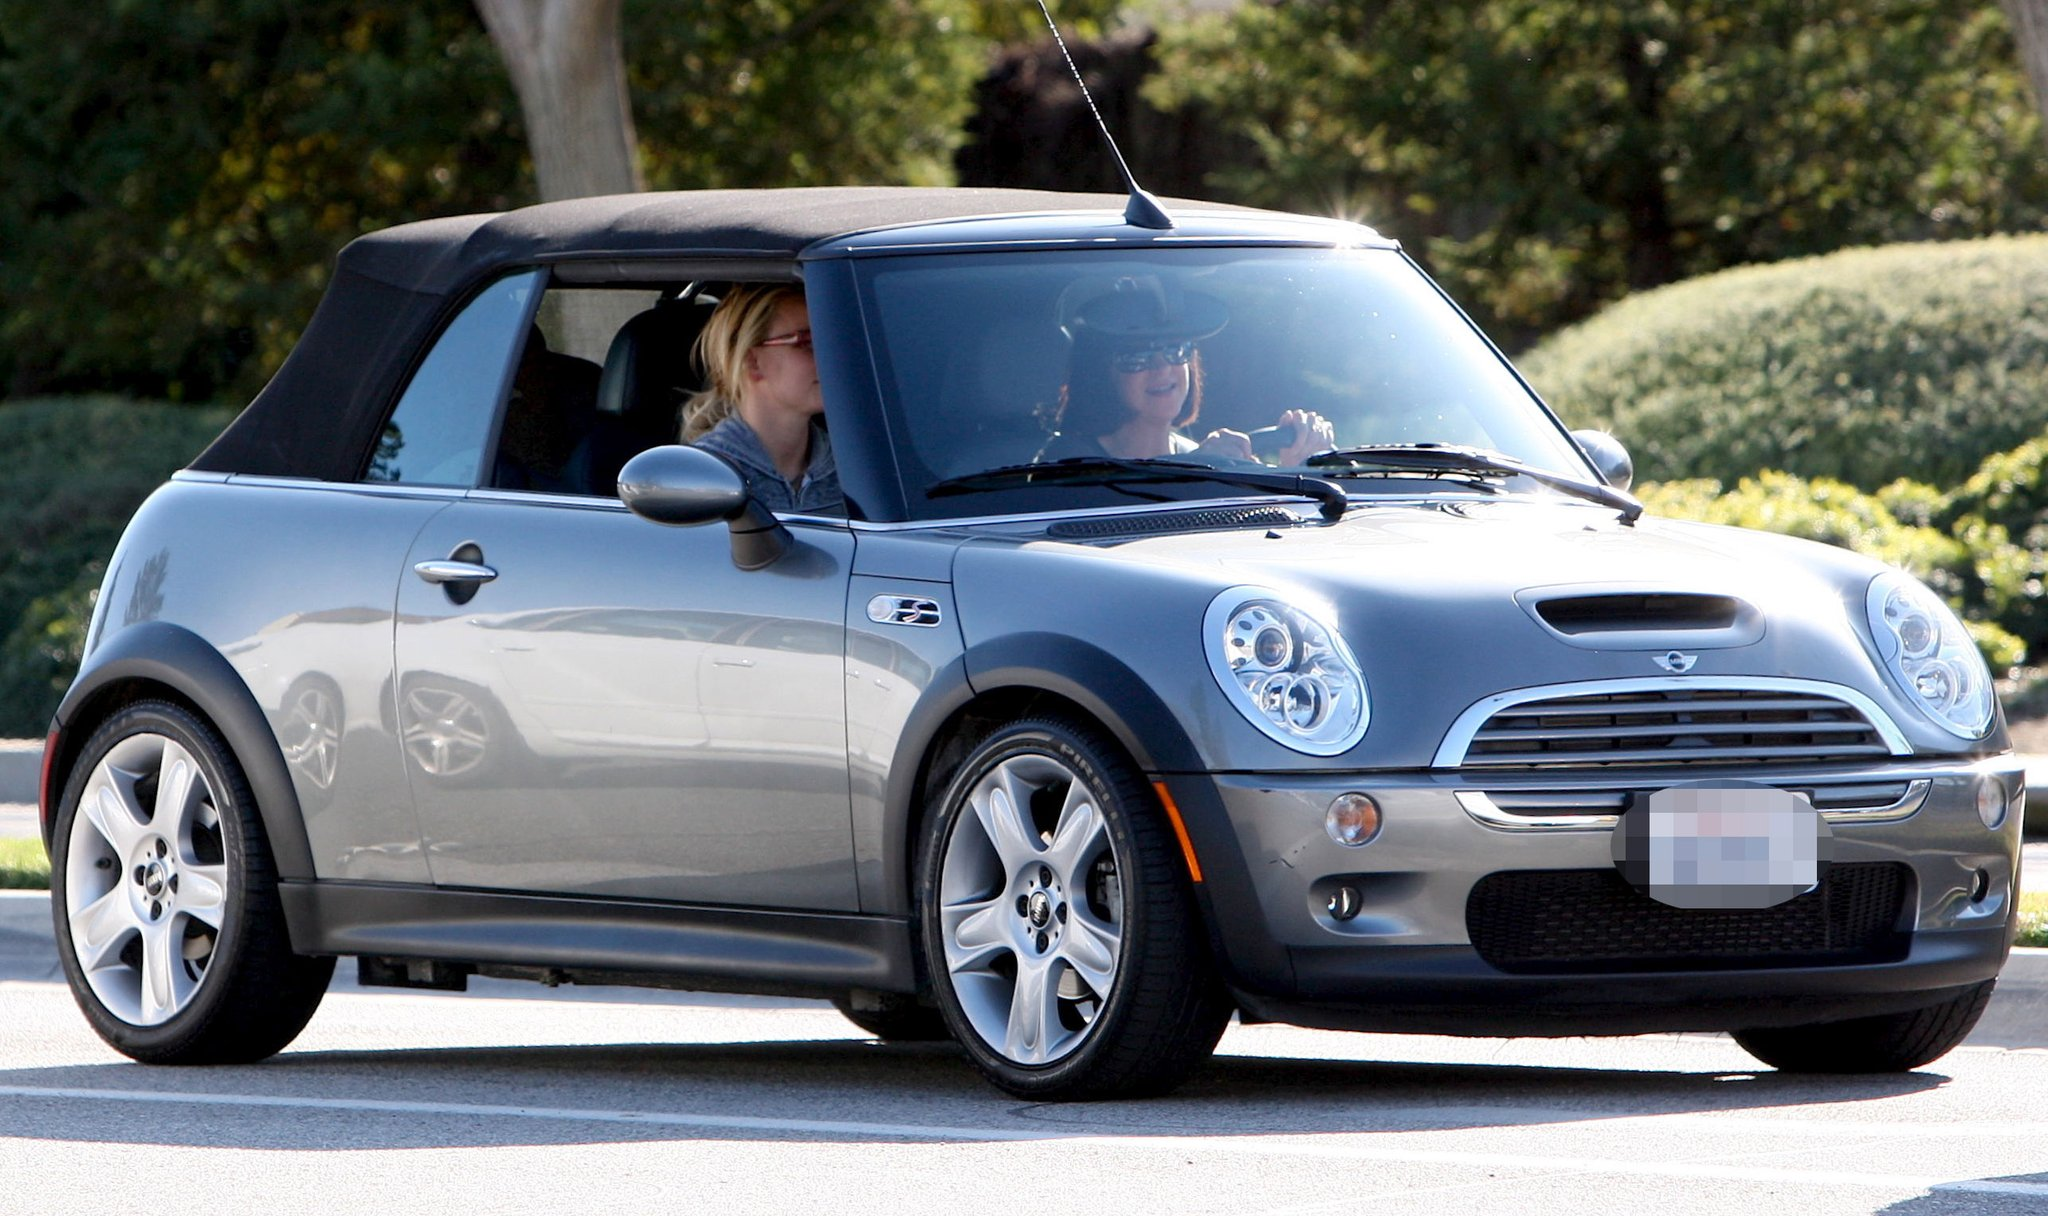 15 Celebs who Drive Cheap Cars, and Don't Show off